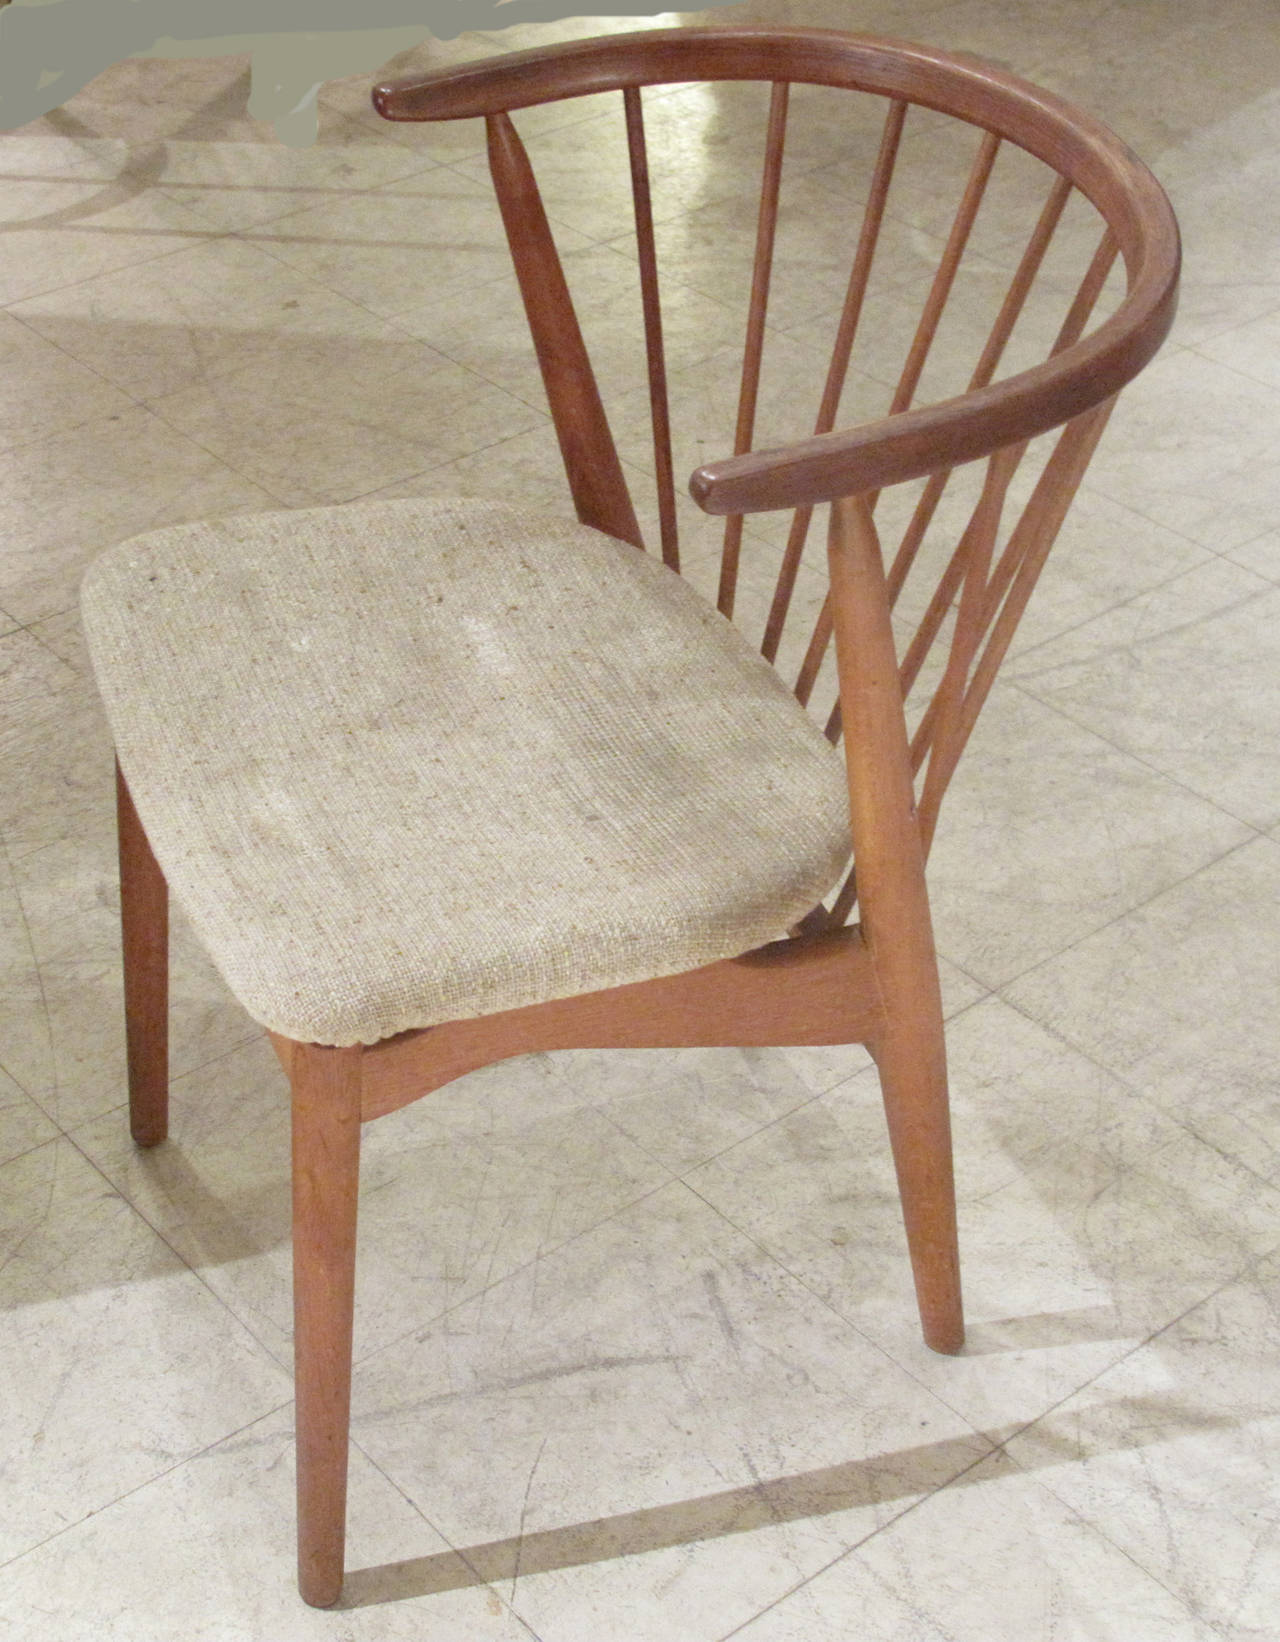 Pair of Danish Spindle Back Teak Chairs by Helge Sibast 1950s